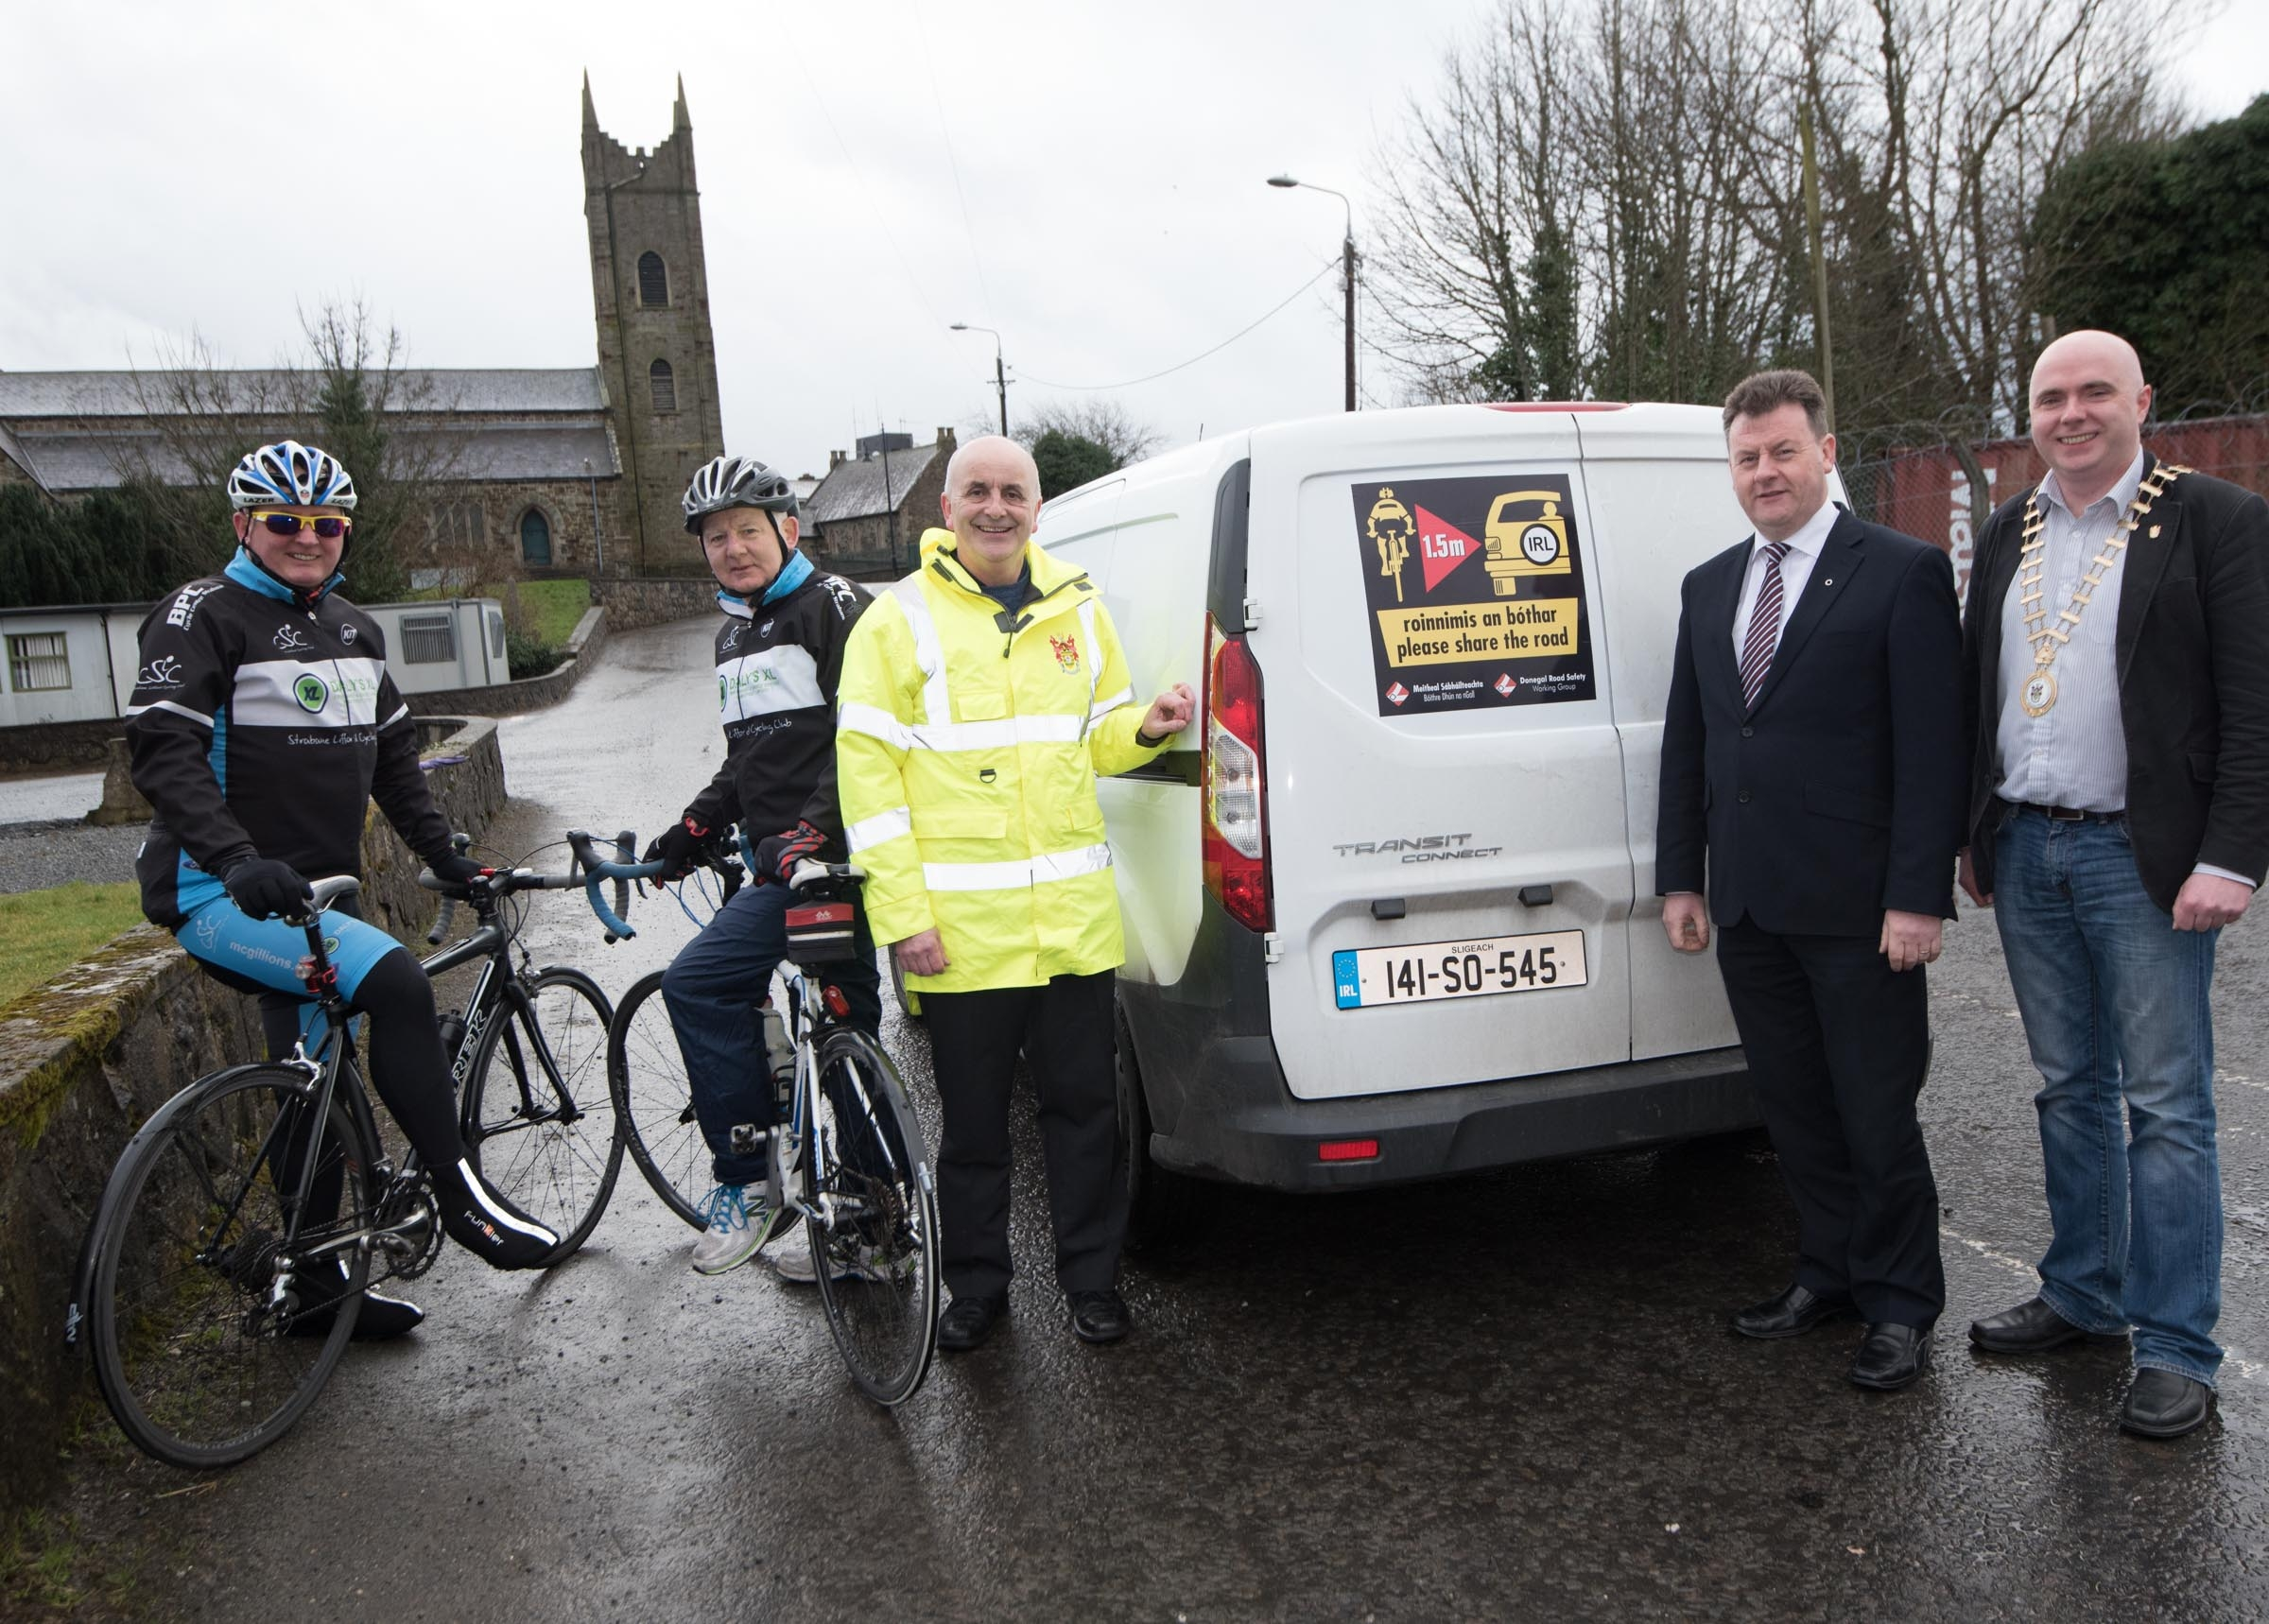 Photo Caption: Cathaoirleach, Cllr. John Campbell, Chief Executive, Seamus Neely,  Road Safety Officer, Brian O'Donnell, Neil McBeth and Brendan Patton, members of Lifford/Strabane Cycling Club at the launch of the Staying Alive 1.5 Cycle Awareness Campaign.